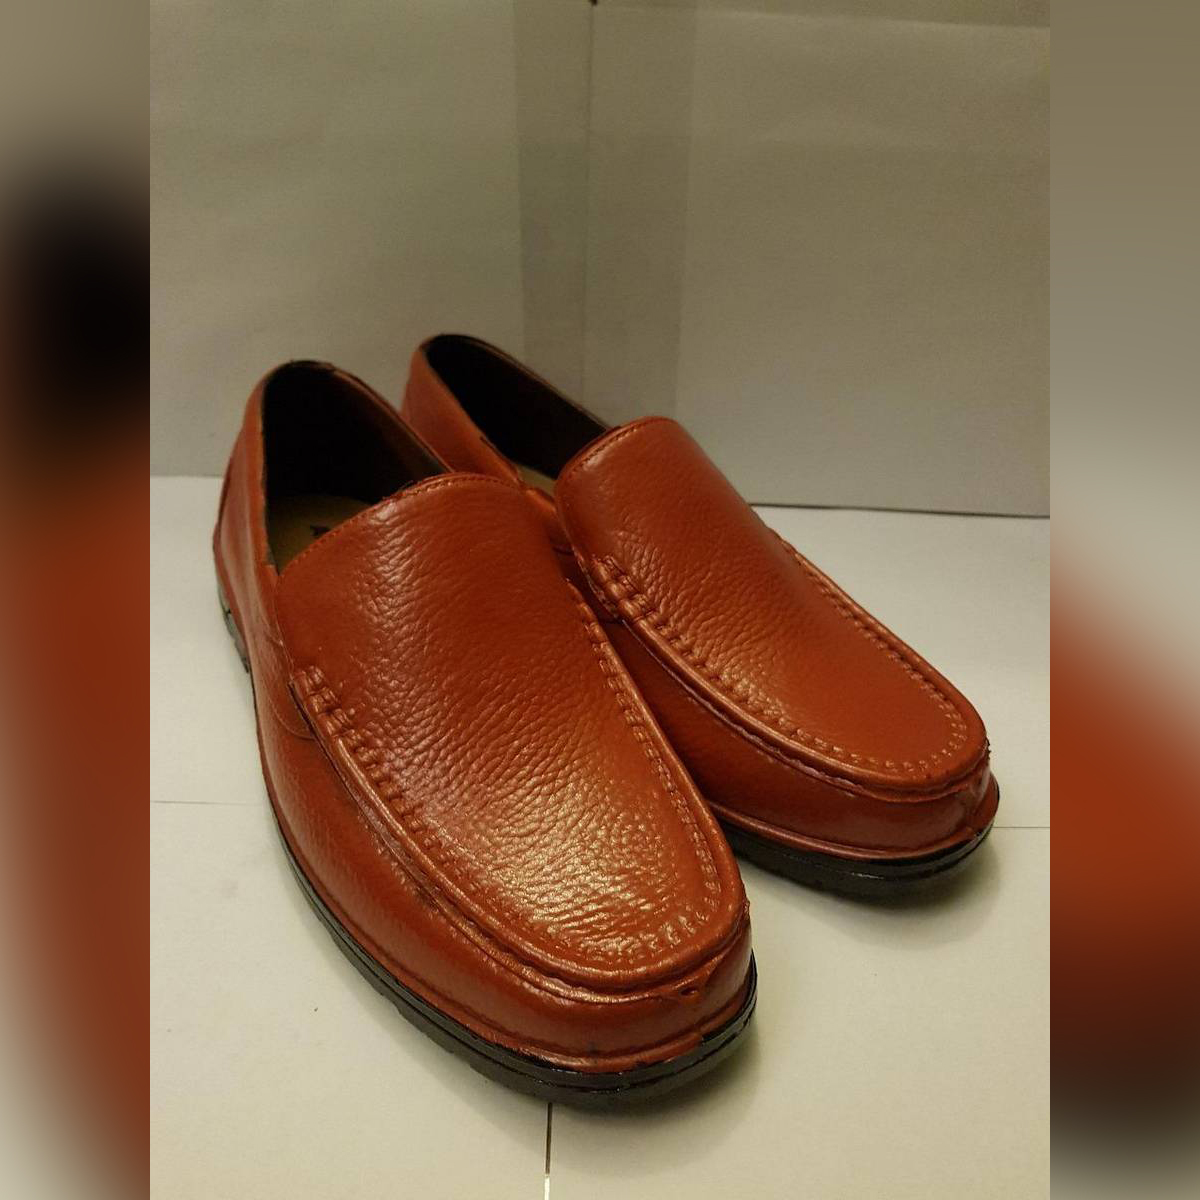 Rubber Moccasins Shoes - Waterproof - Soft And Comfortable - Light Brown Color-A028